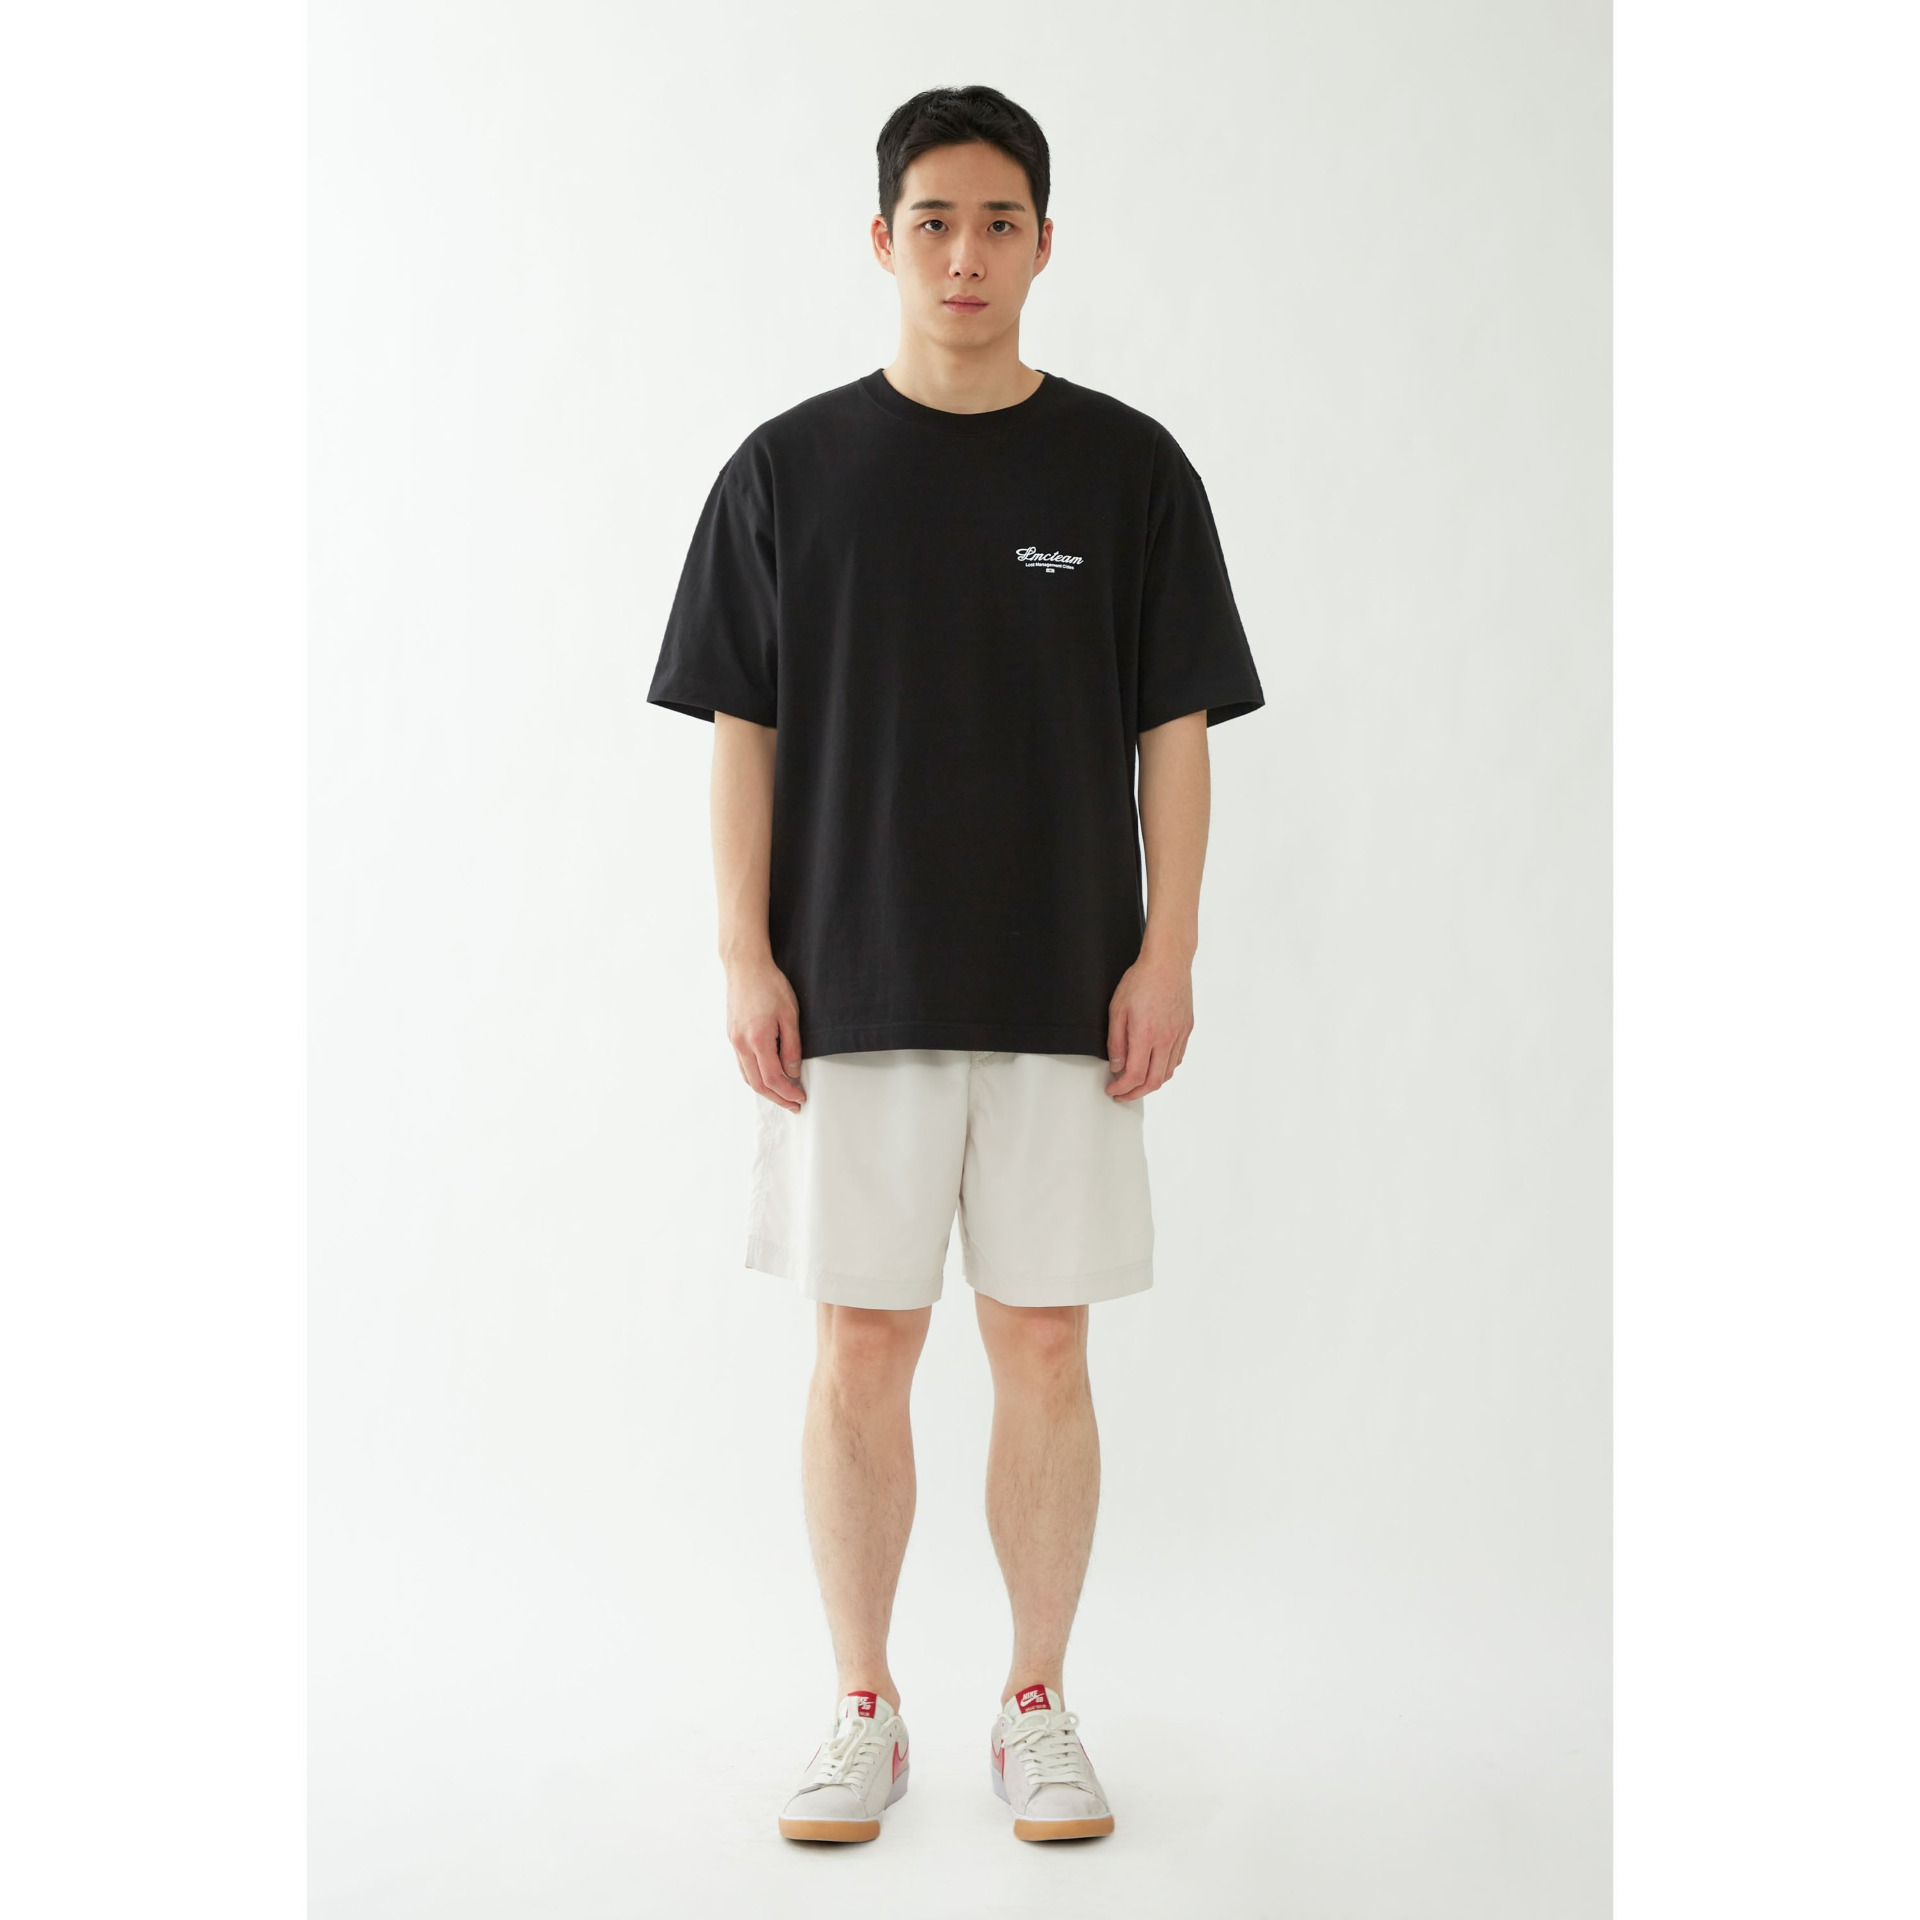 LMC TEAM EARTH ORGANIC TEE black